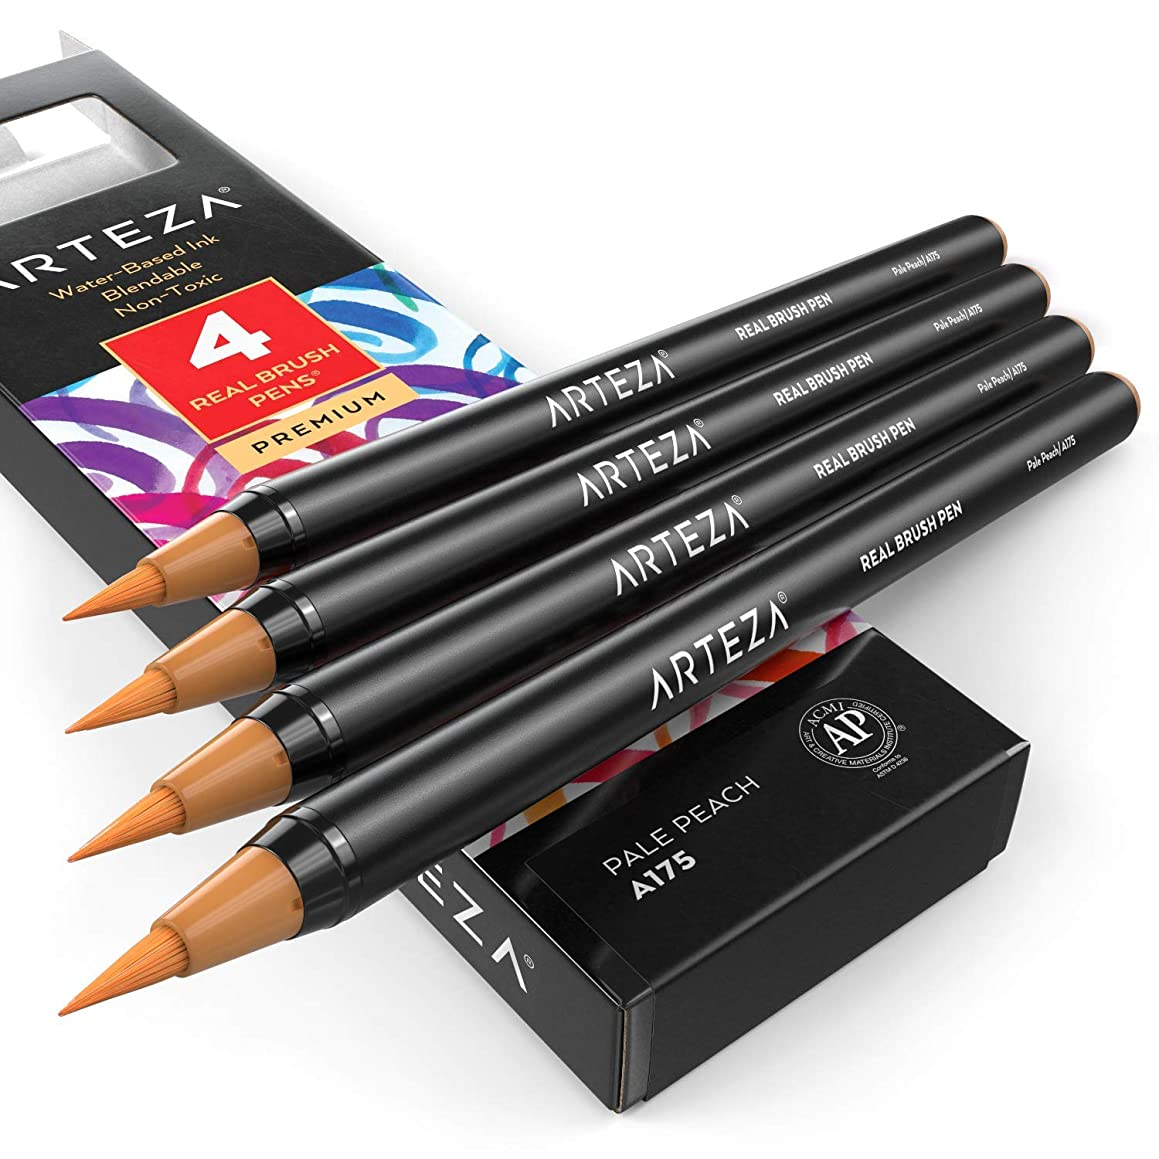 ARTEZA Real Brush Pens (A175 Pale Peach) Pack of 4, for Watercolor Painting with Flexible Nylon Brush Tips, Paint Markers for Coloring, Calligraphy and Drawing demmz07576